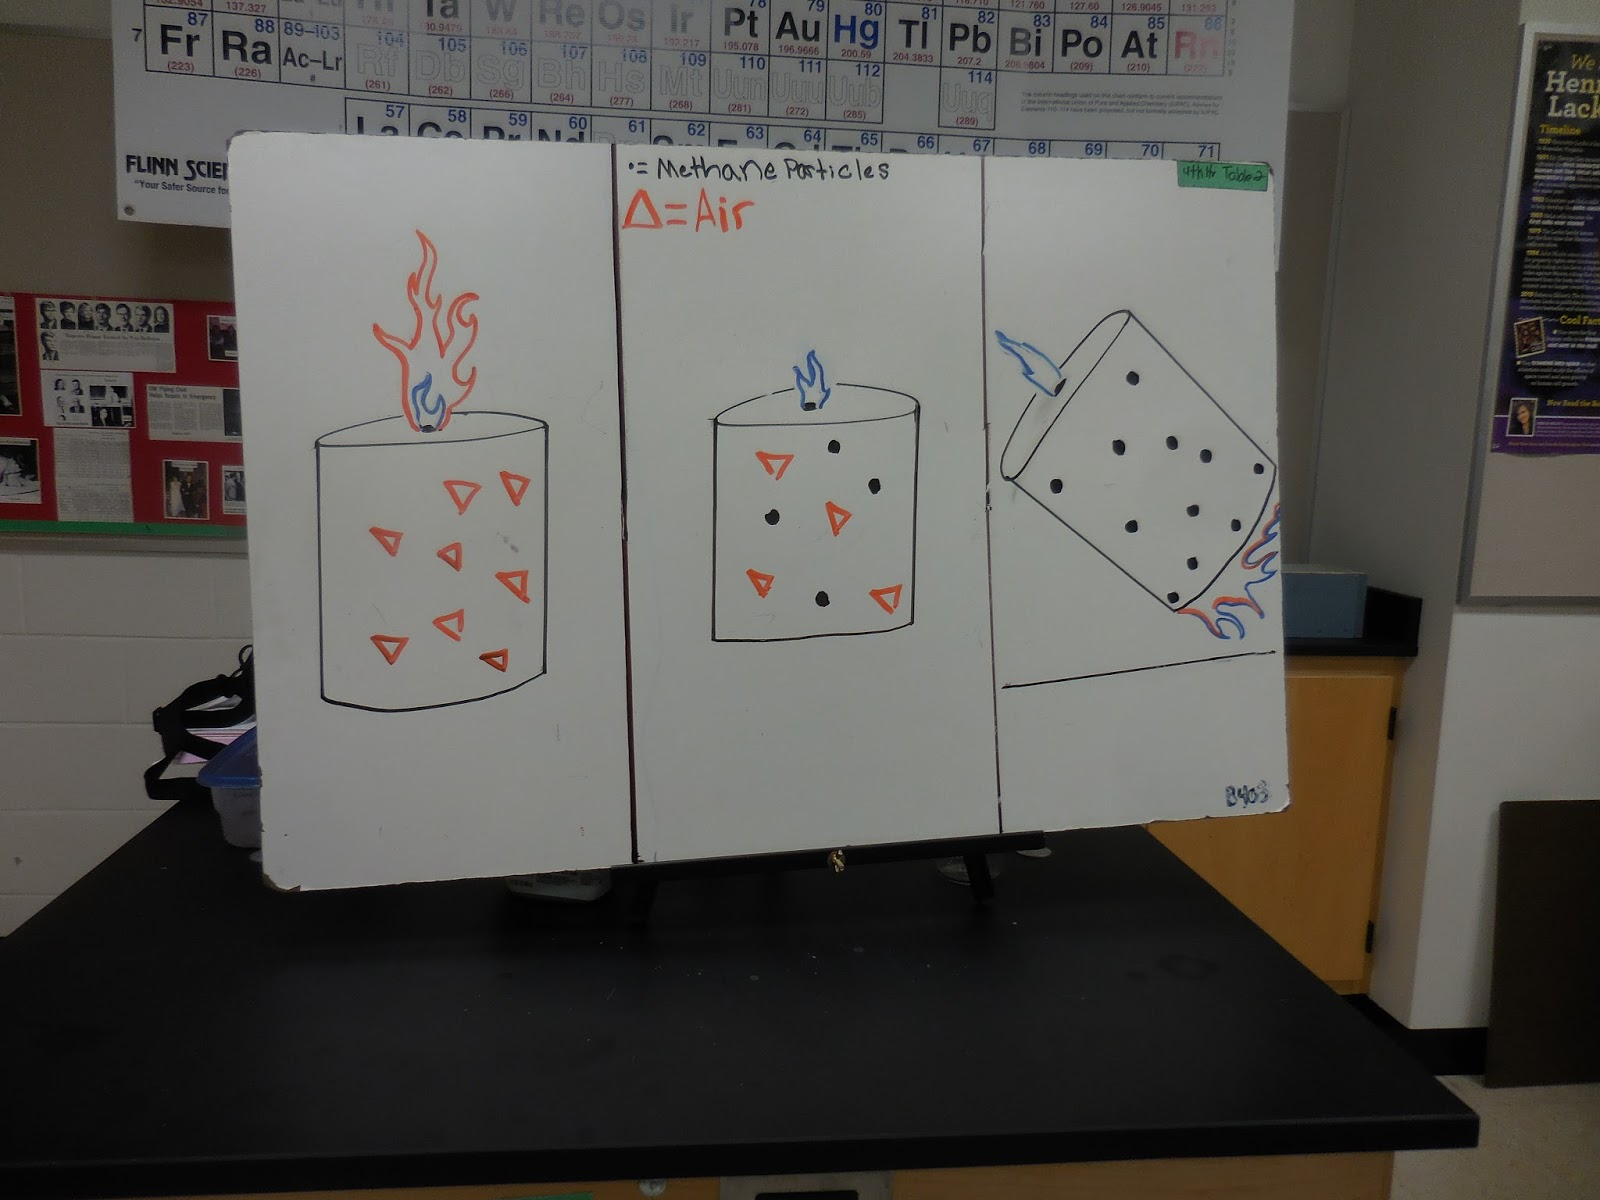 Bens sicence blog september 2015 there were many ways that people depicted particles some used triangles circles and other shapes while others used colors to represent the particles pooptronica Images